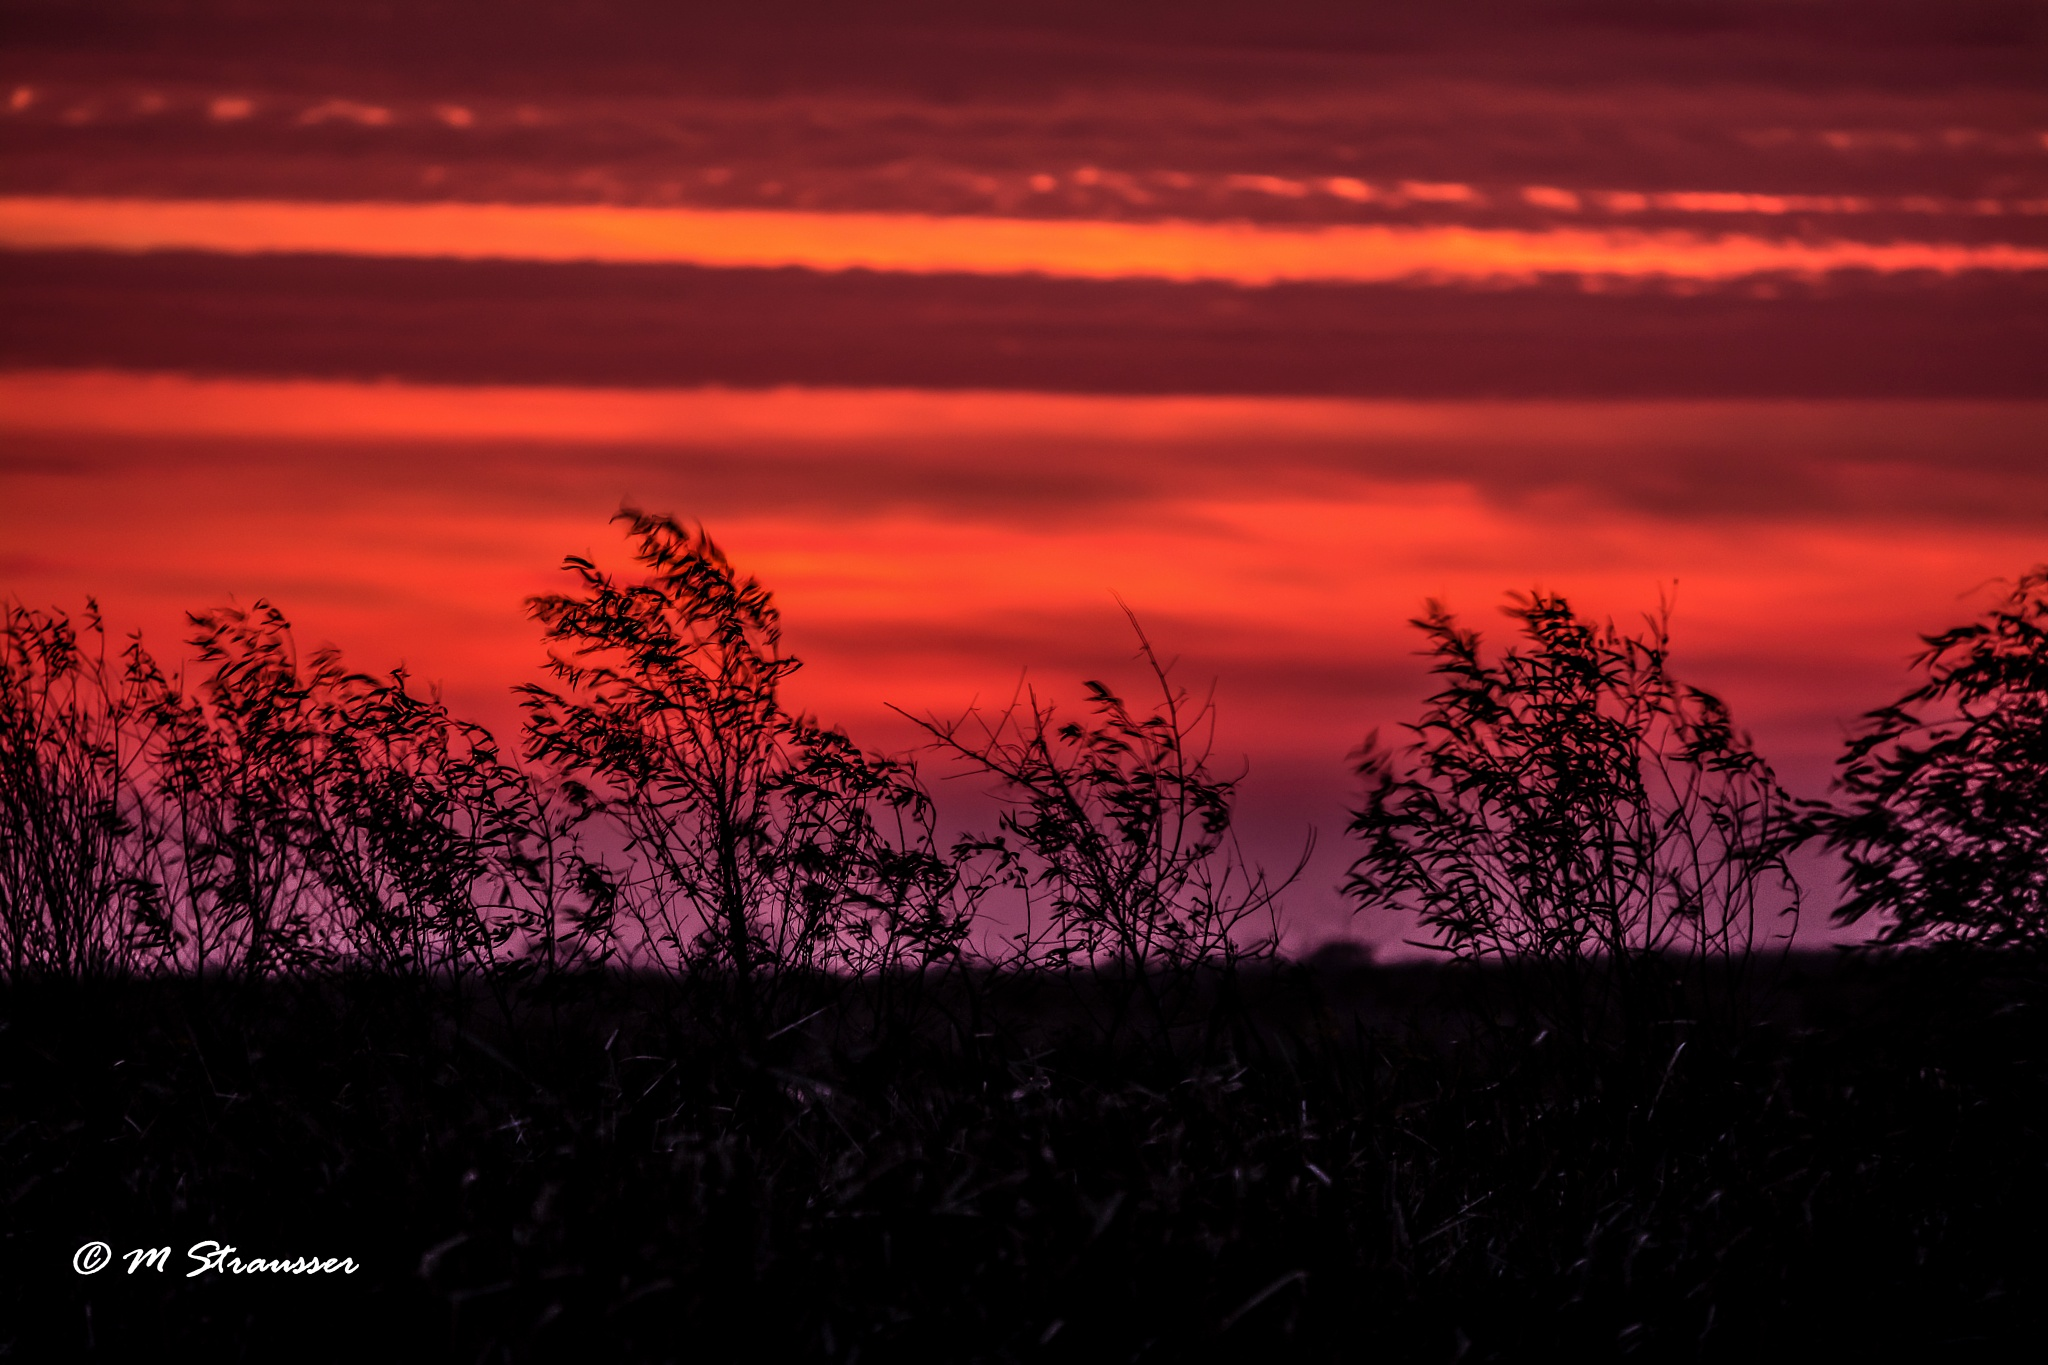 marsh sunrise by MStrausser of the iMage Shack